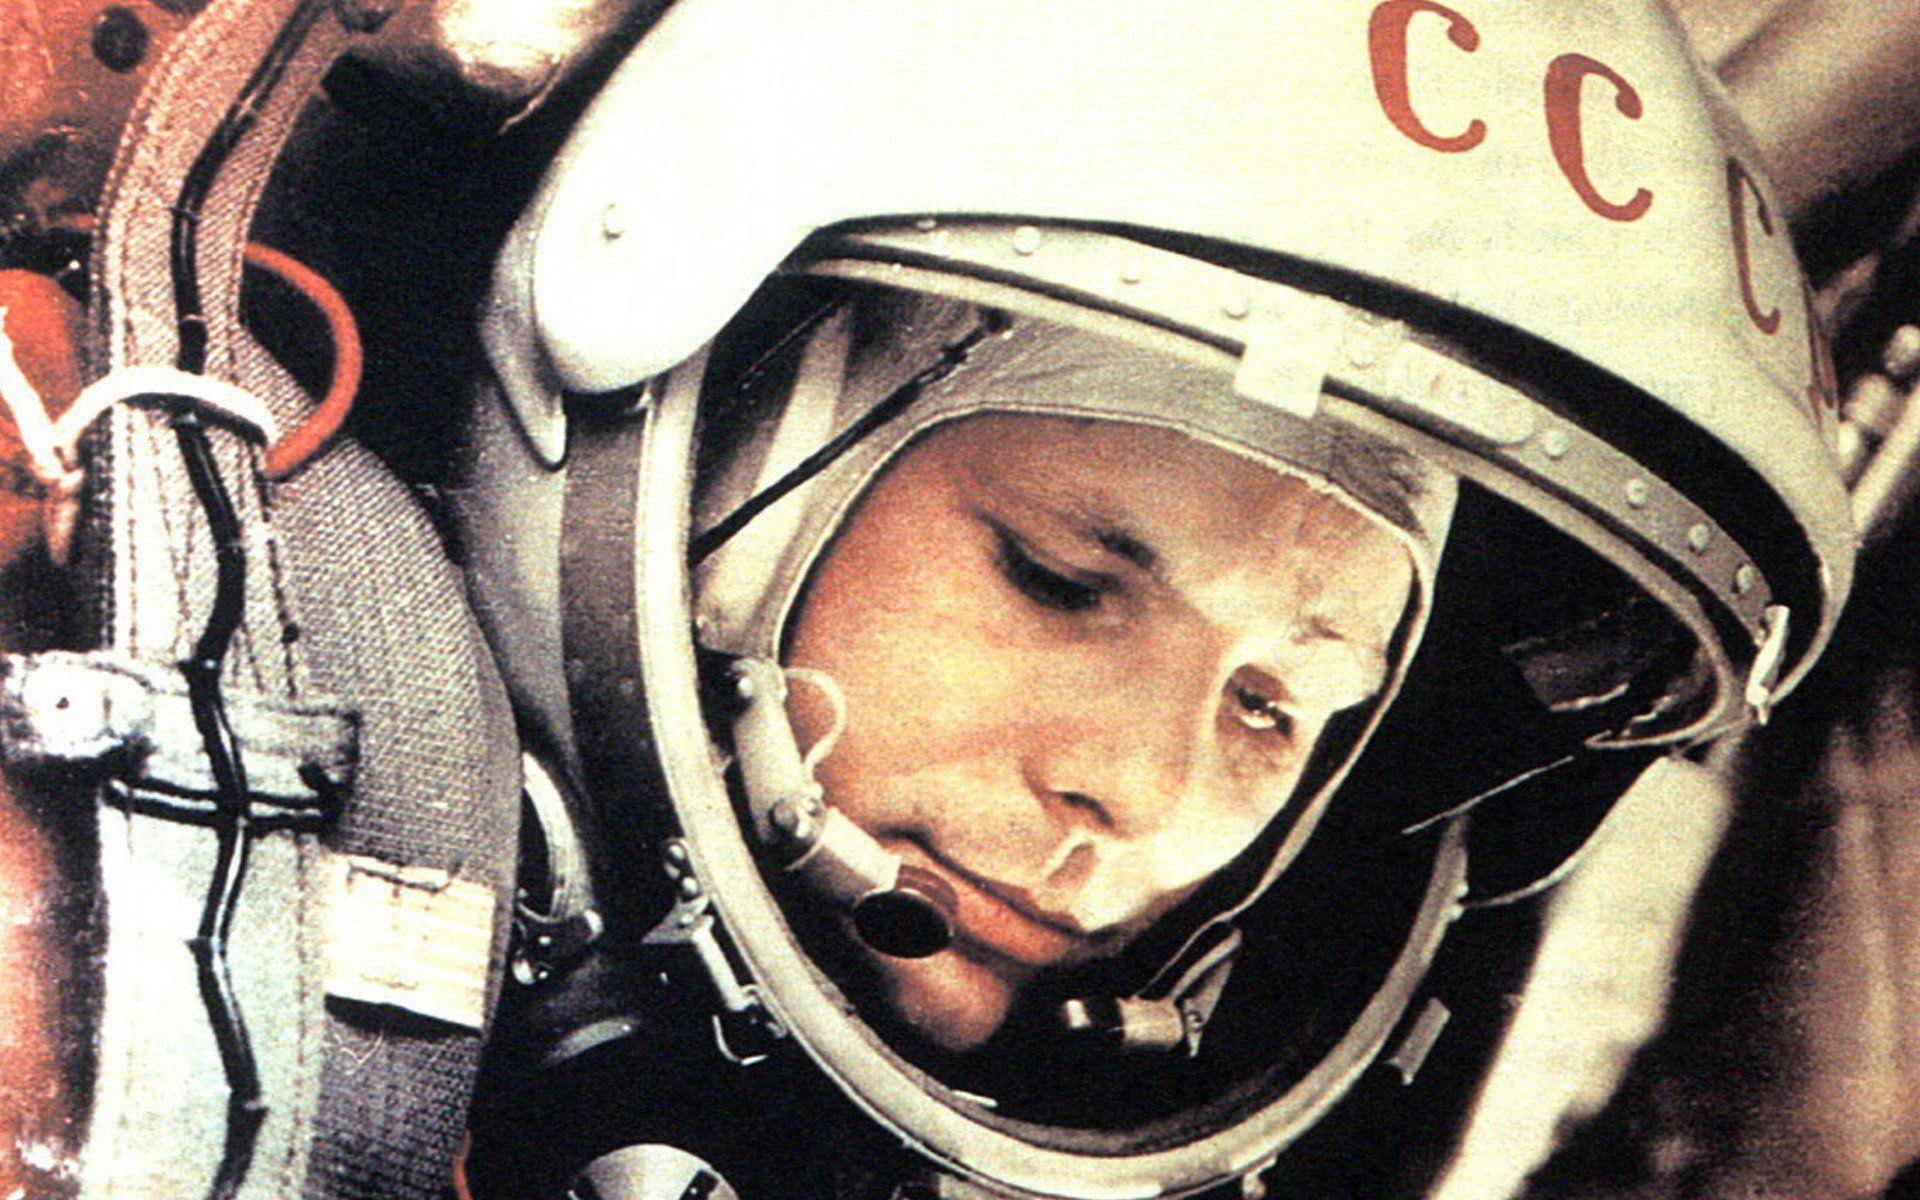 yuri gagarin russian astronaut - photo #6